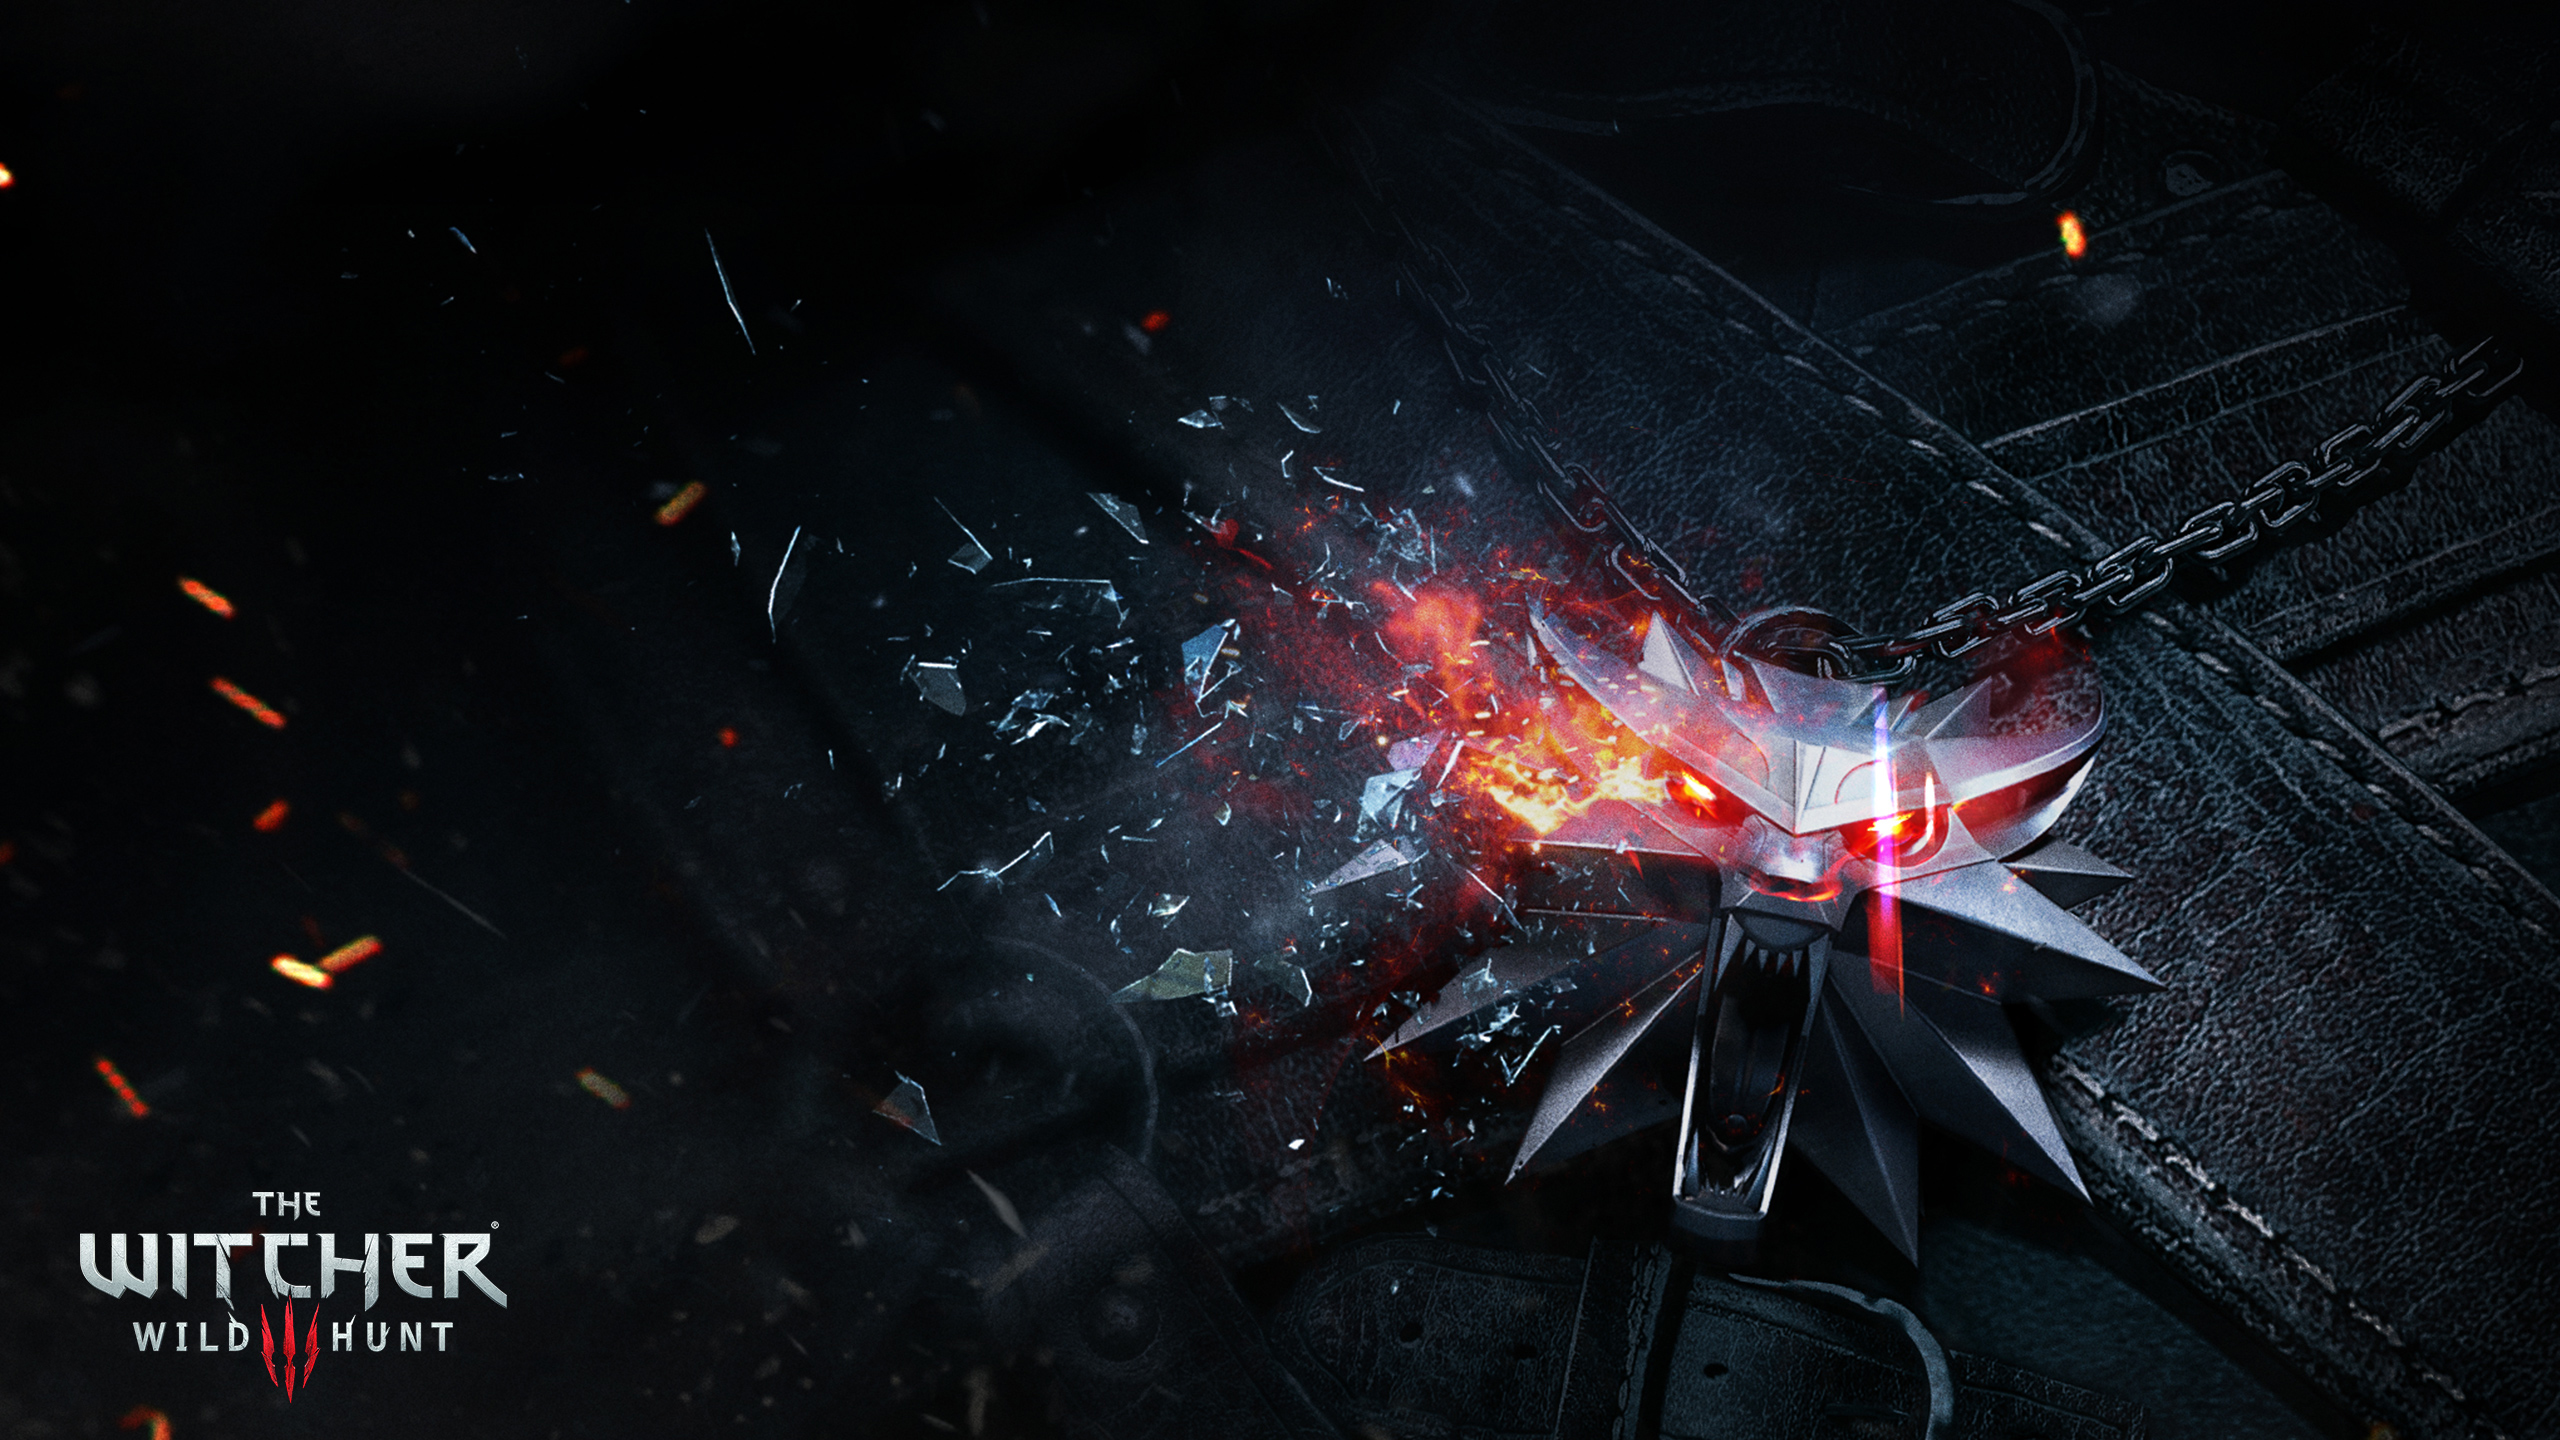 Fonds dcran The Witcher 3 tous les wallpapers The Witcher 3 2560x1440